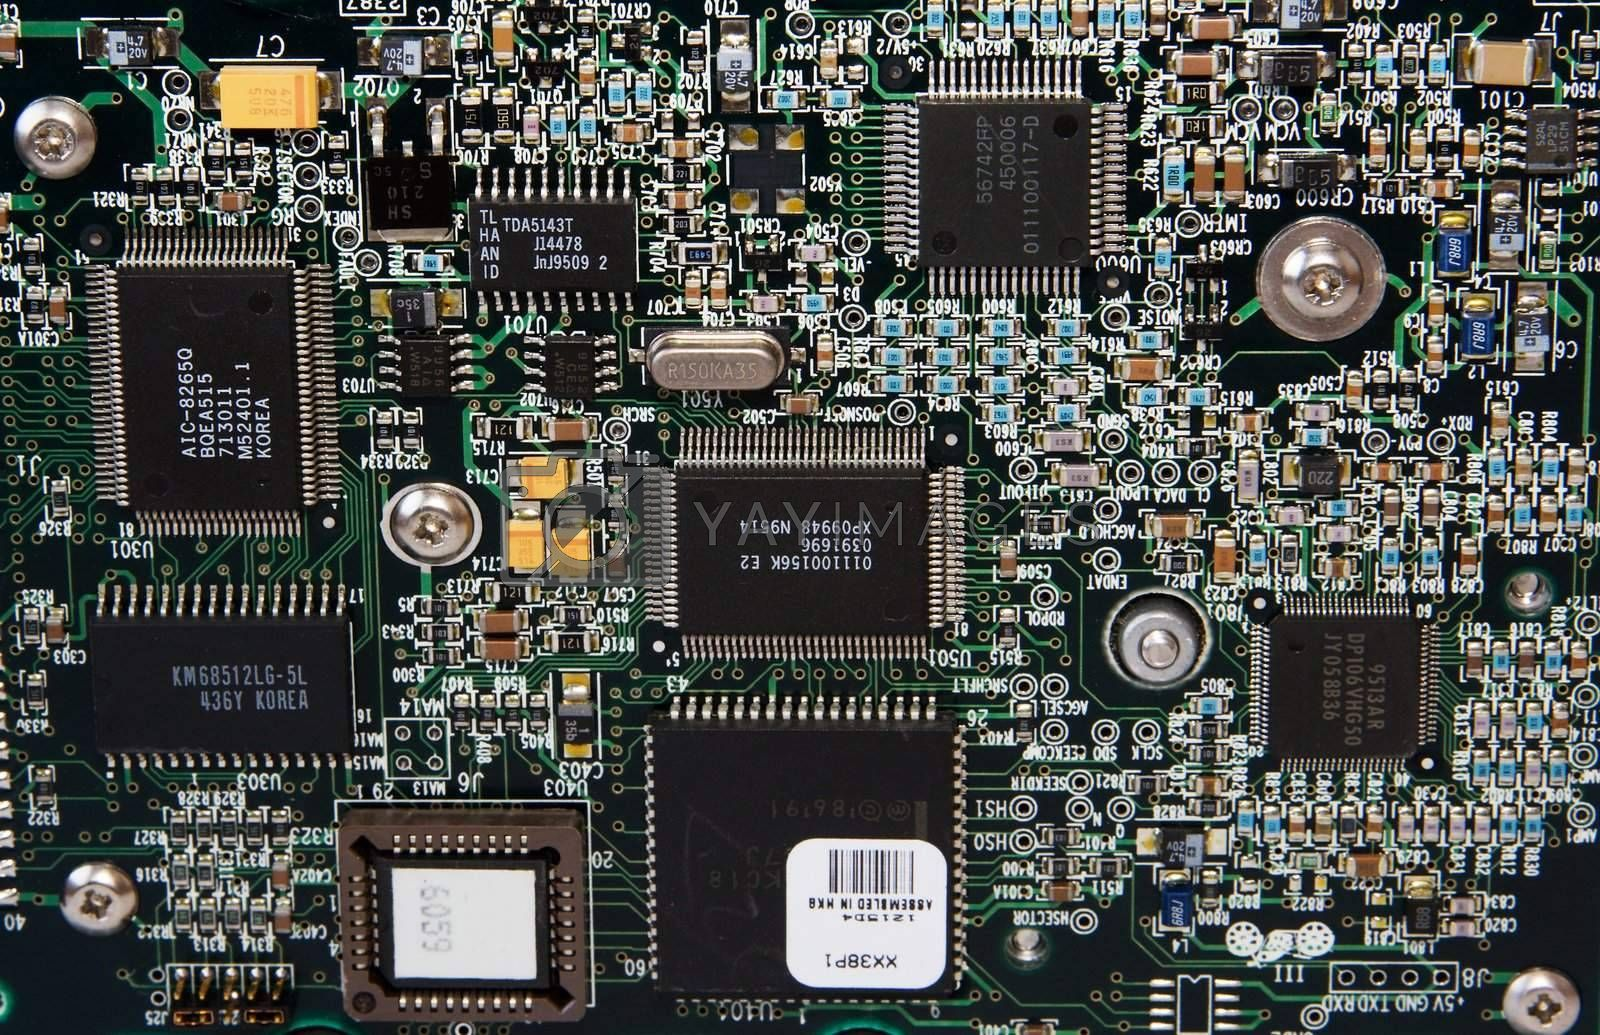 A close-up of an integrated circuit board